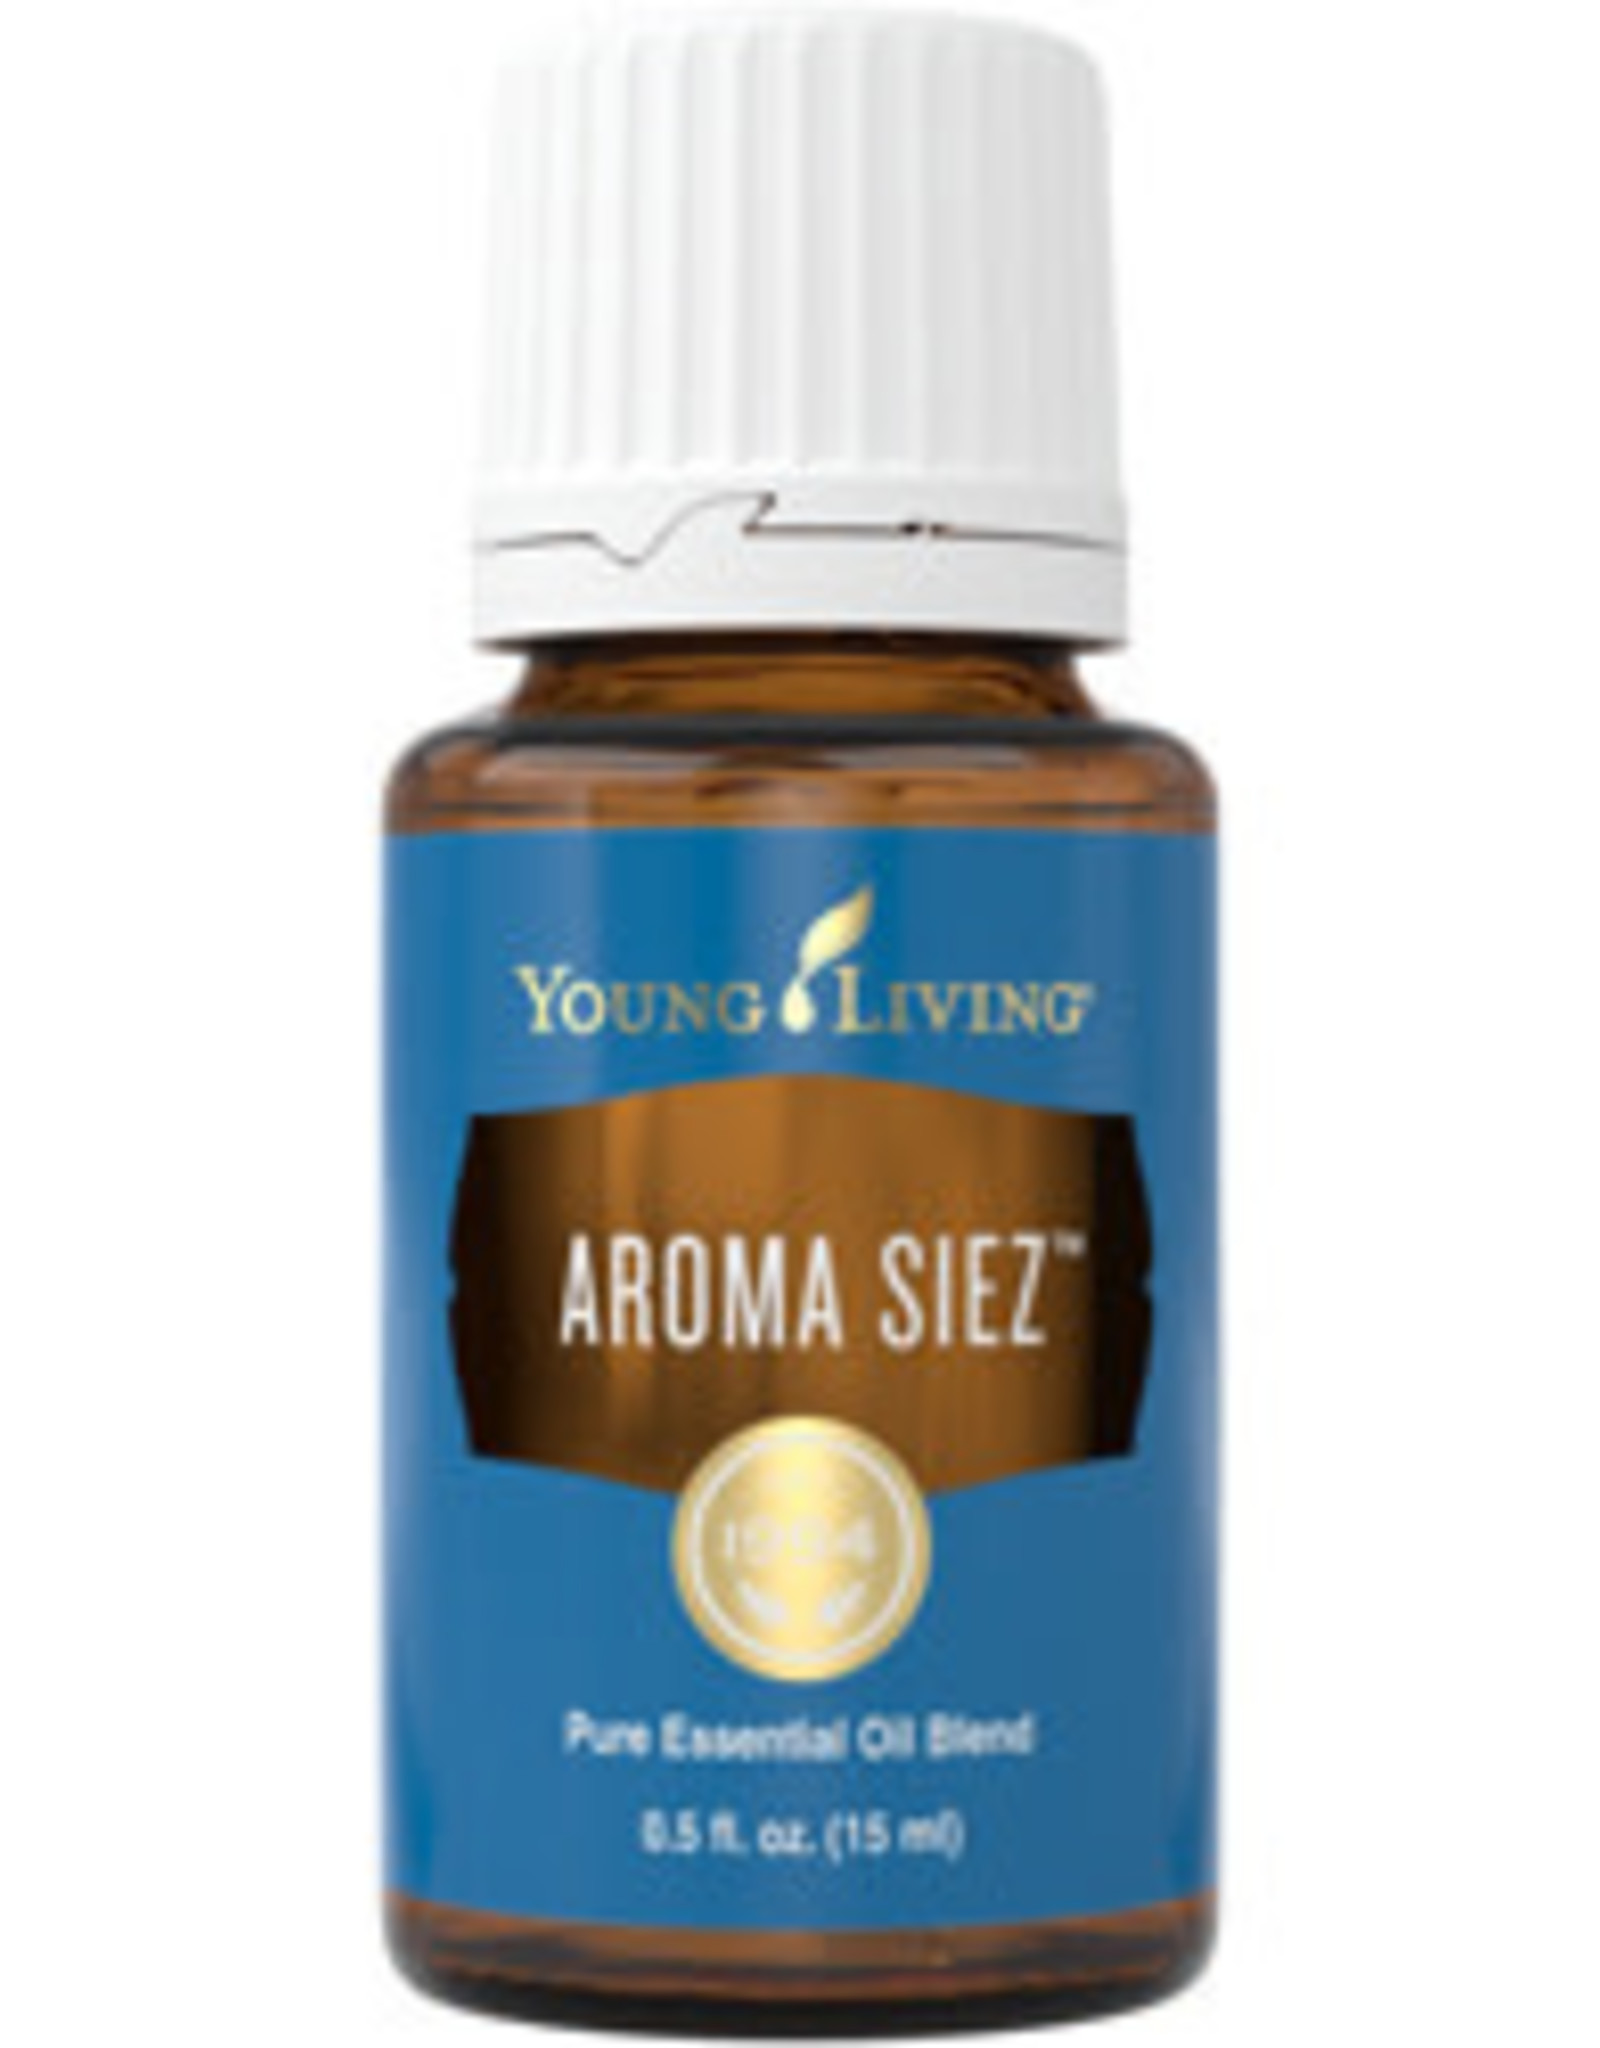 Young Living Aroma Siez Oil Blend